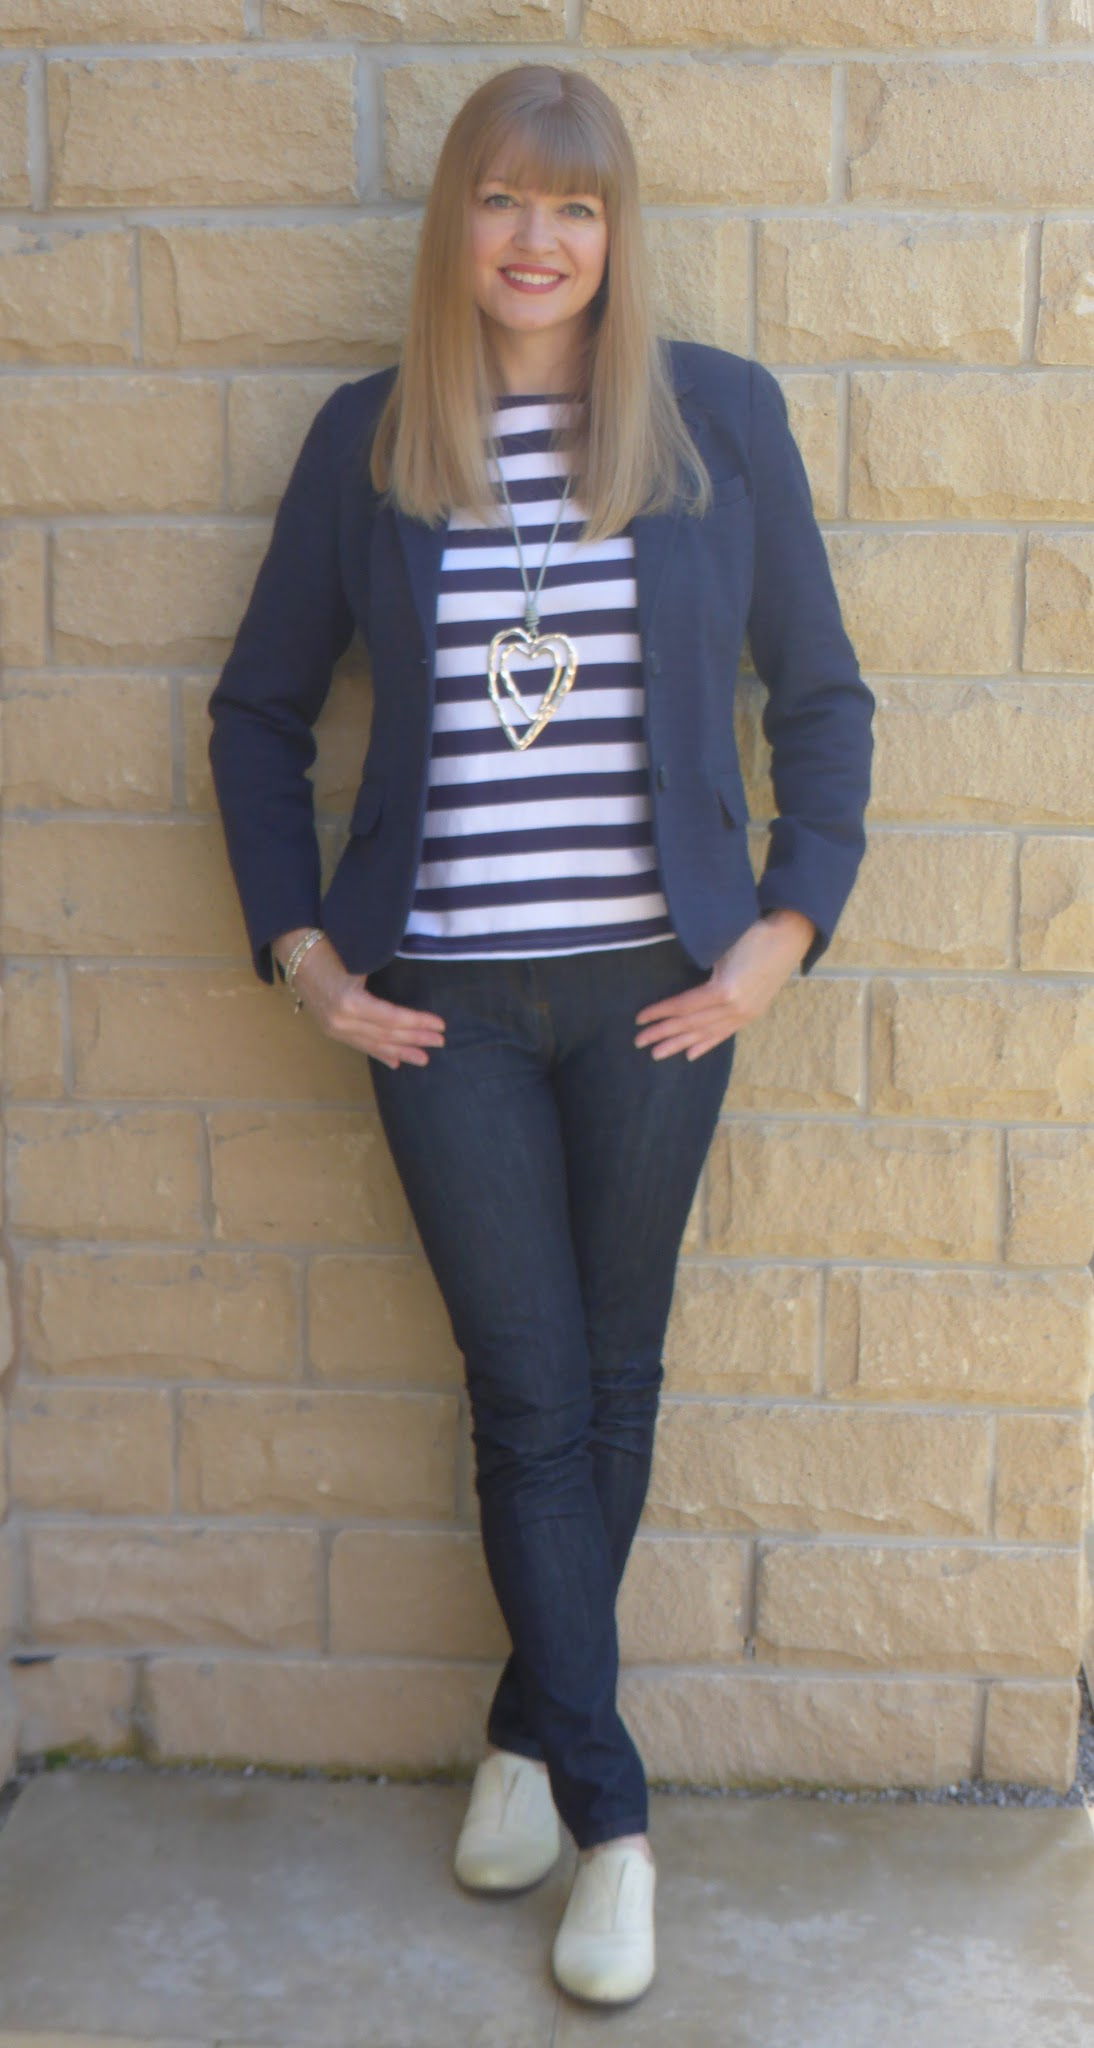 Over 40 blogger What Lizzy loves wearing Jack Wills breton top, Boden skinny jeans, Clarks yellow brogues and Joules navy tweed jersey blazer